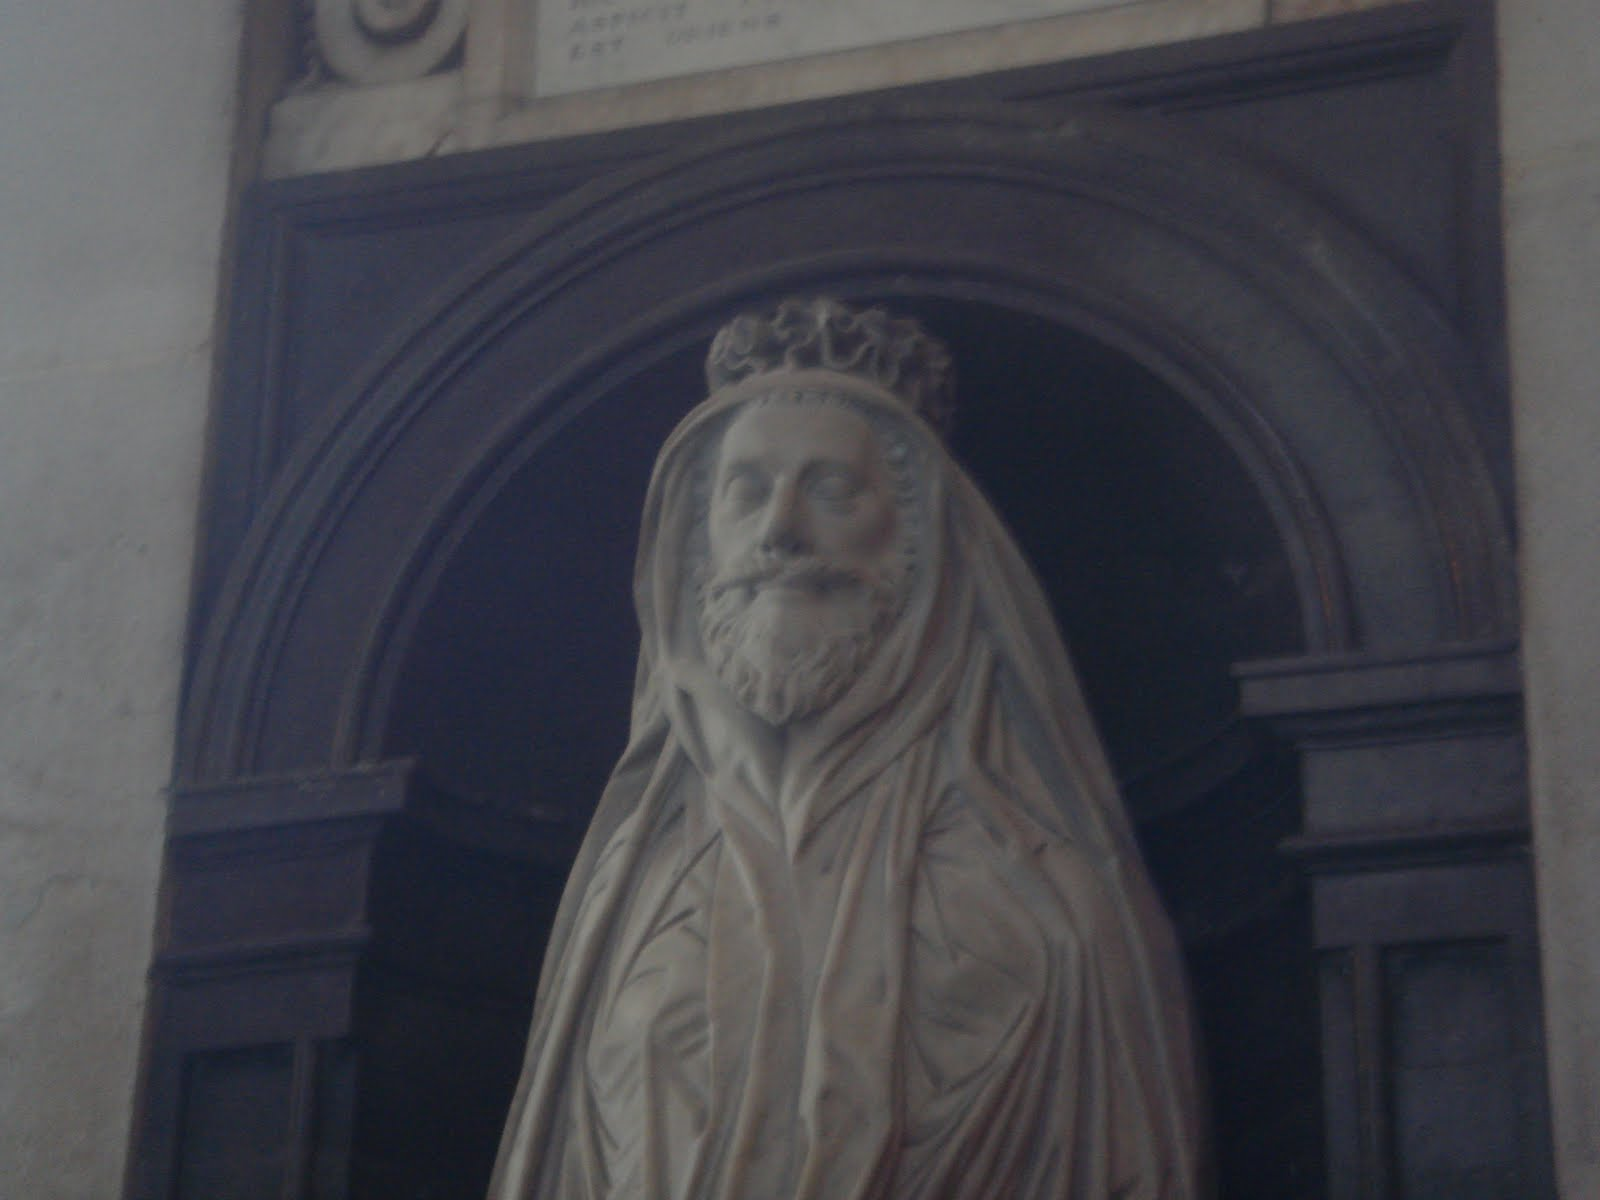 Effigy of John Donne in his burial shroud, St. Paul's Cathedral